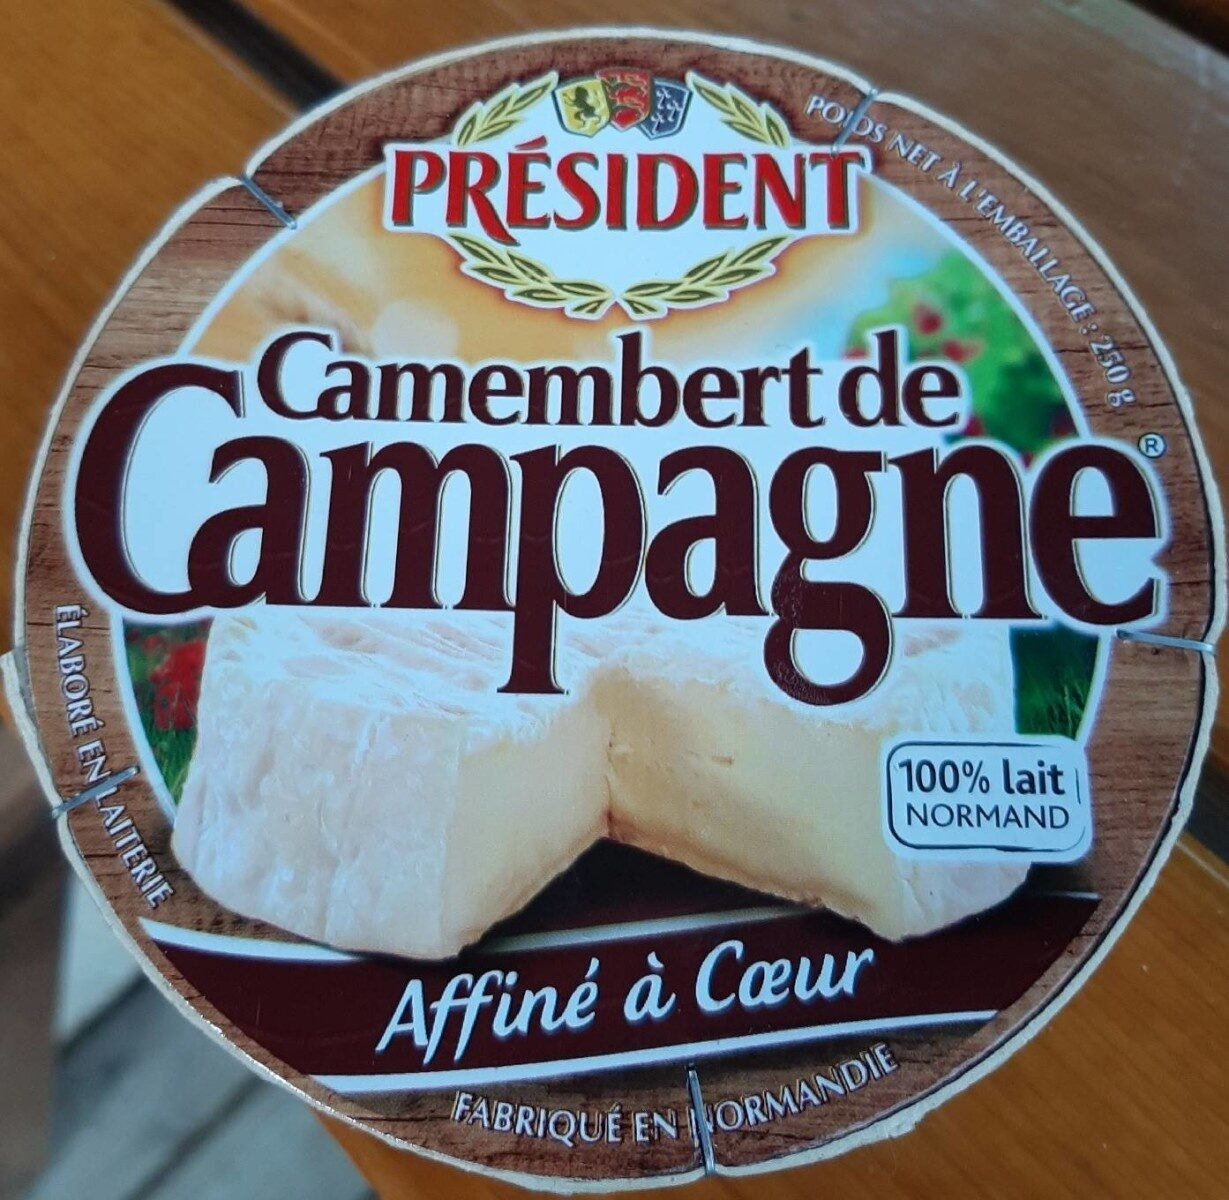 Camembert de campagne - Product - fr